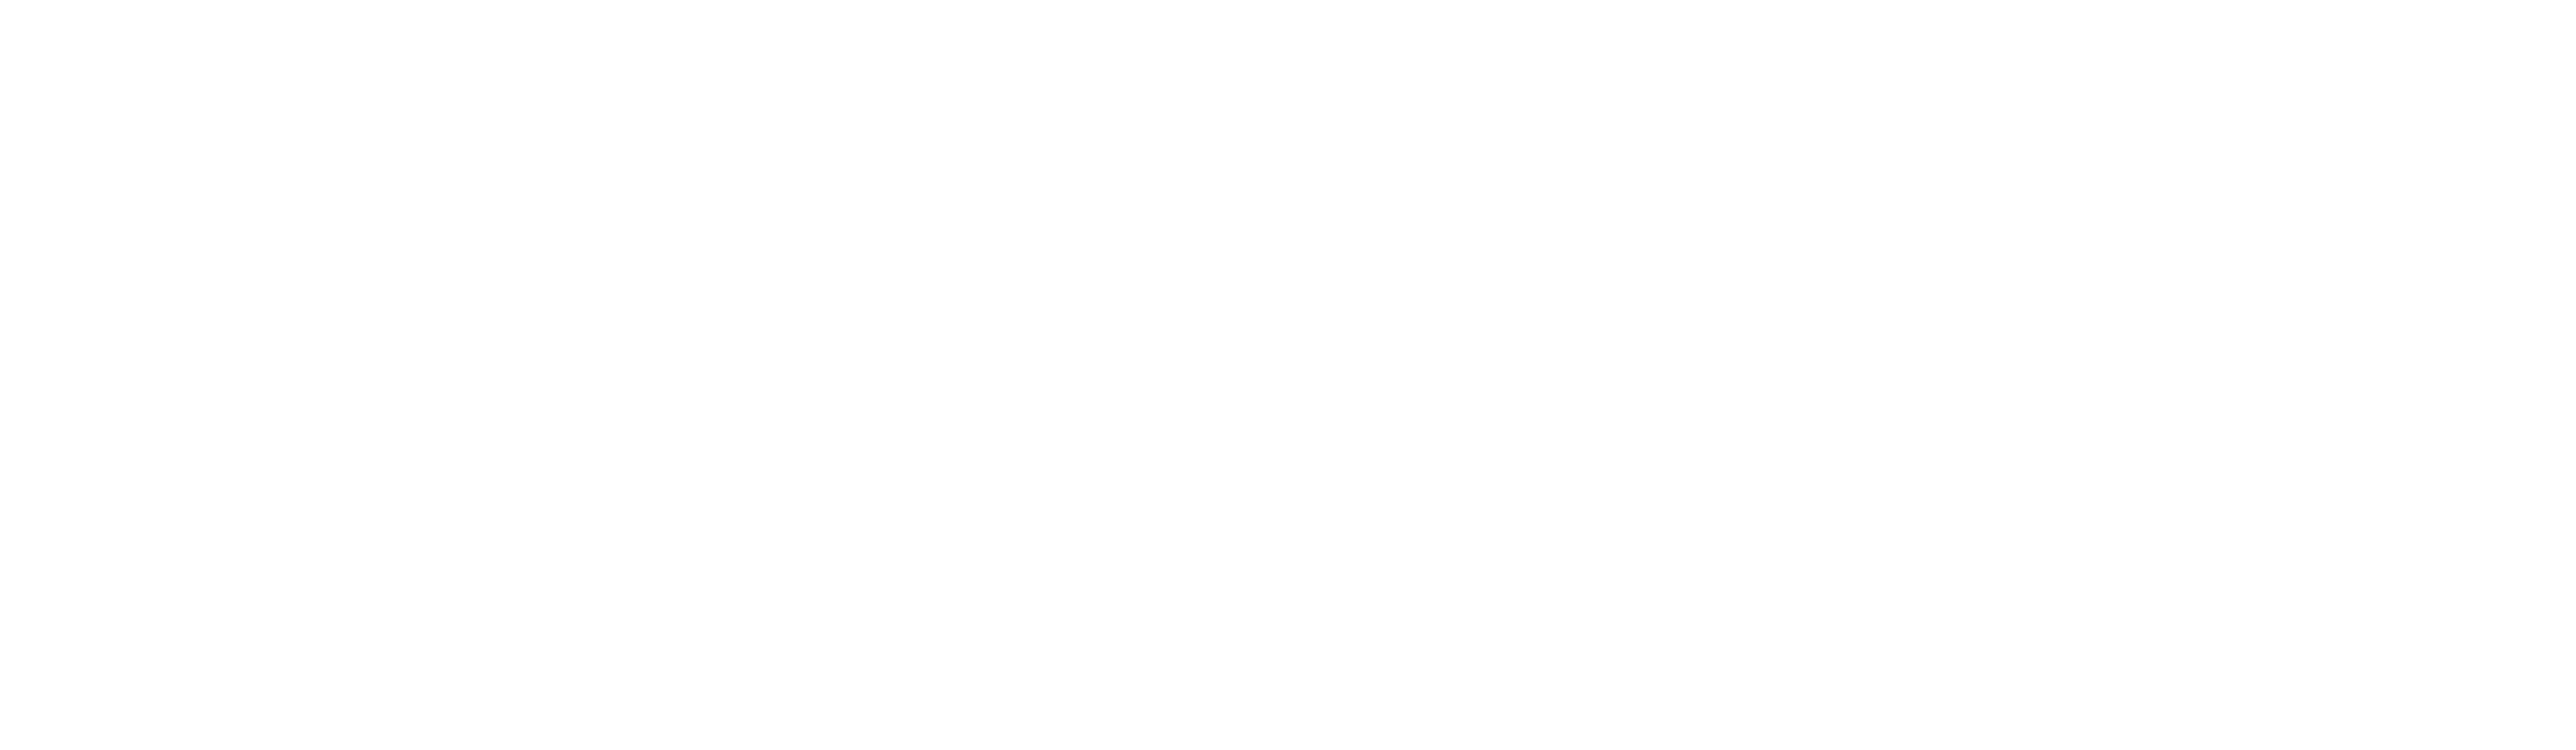 Home Web Up & Go logo